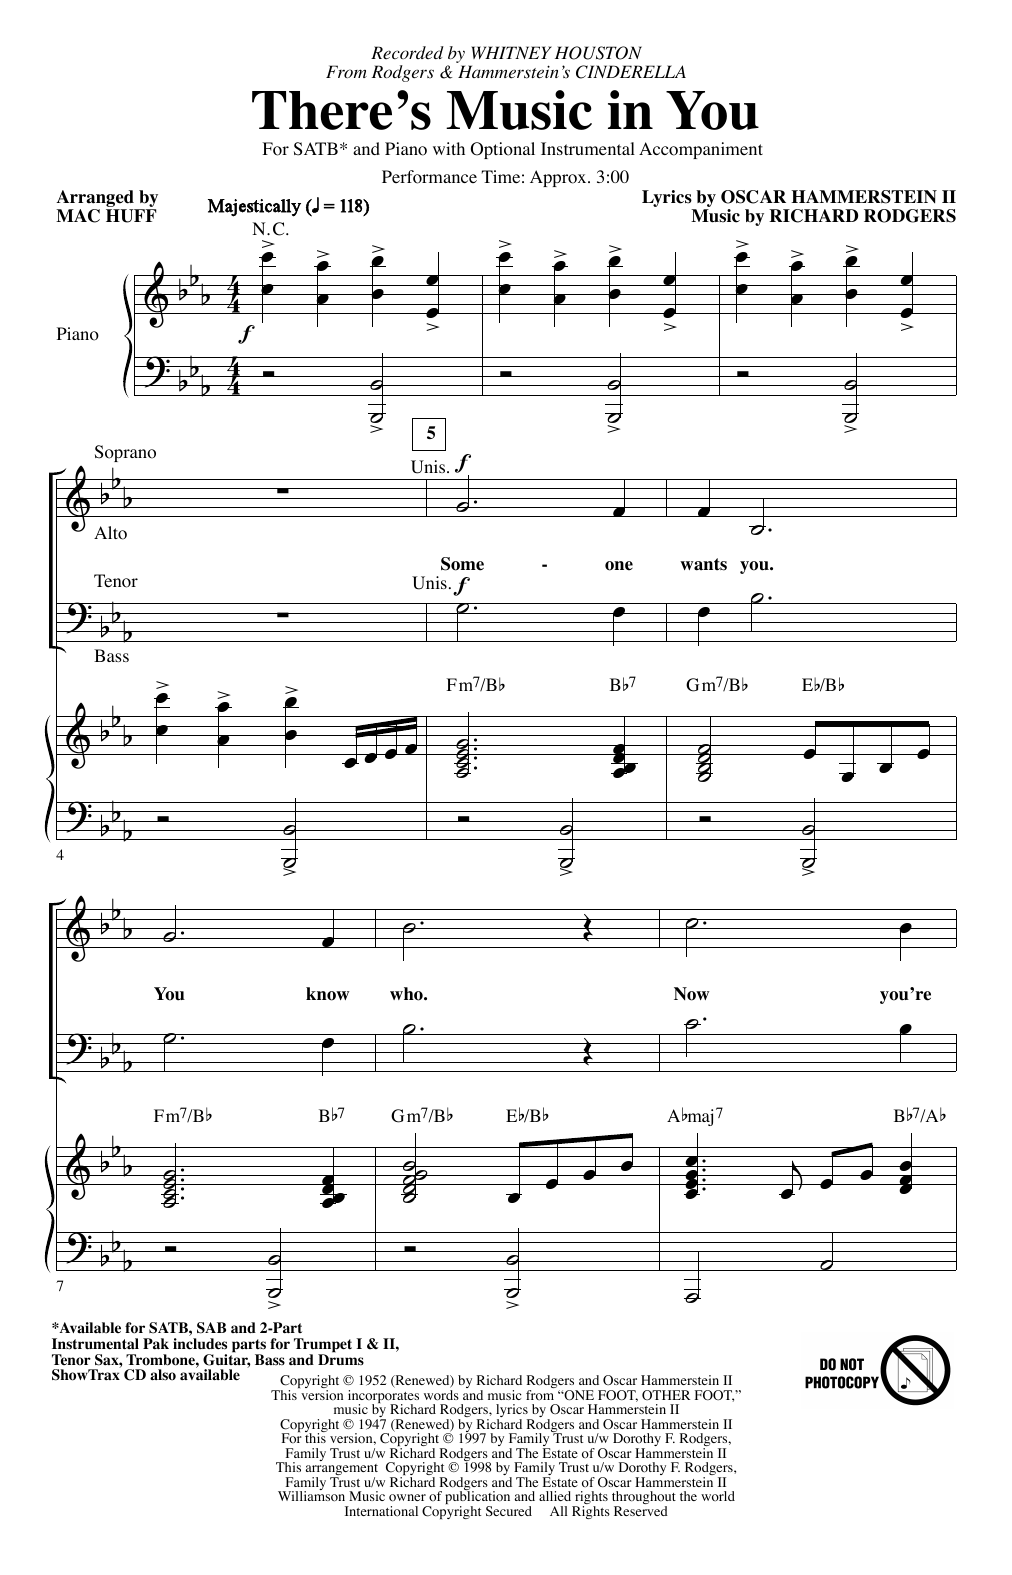 Partition chorale There's Music In You (from Cinderella) (arr. Mac Huff) de Whitney Houston - SATB